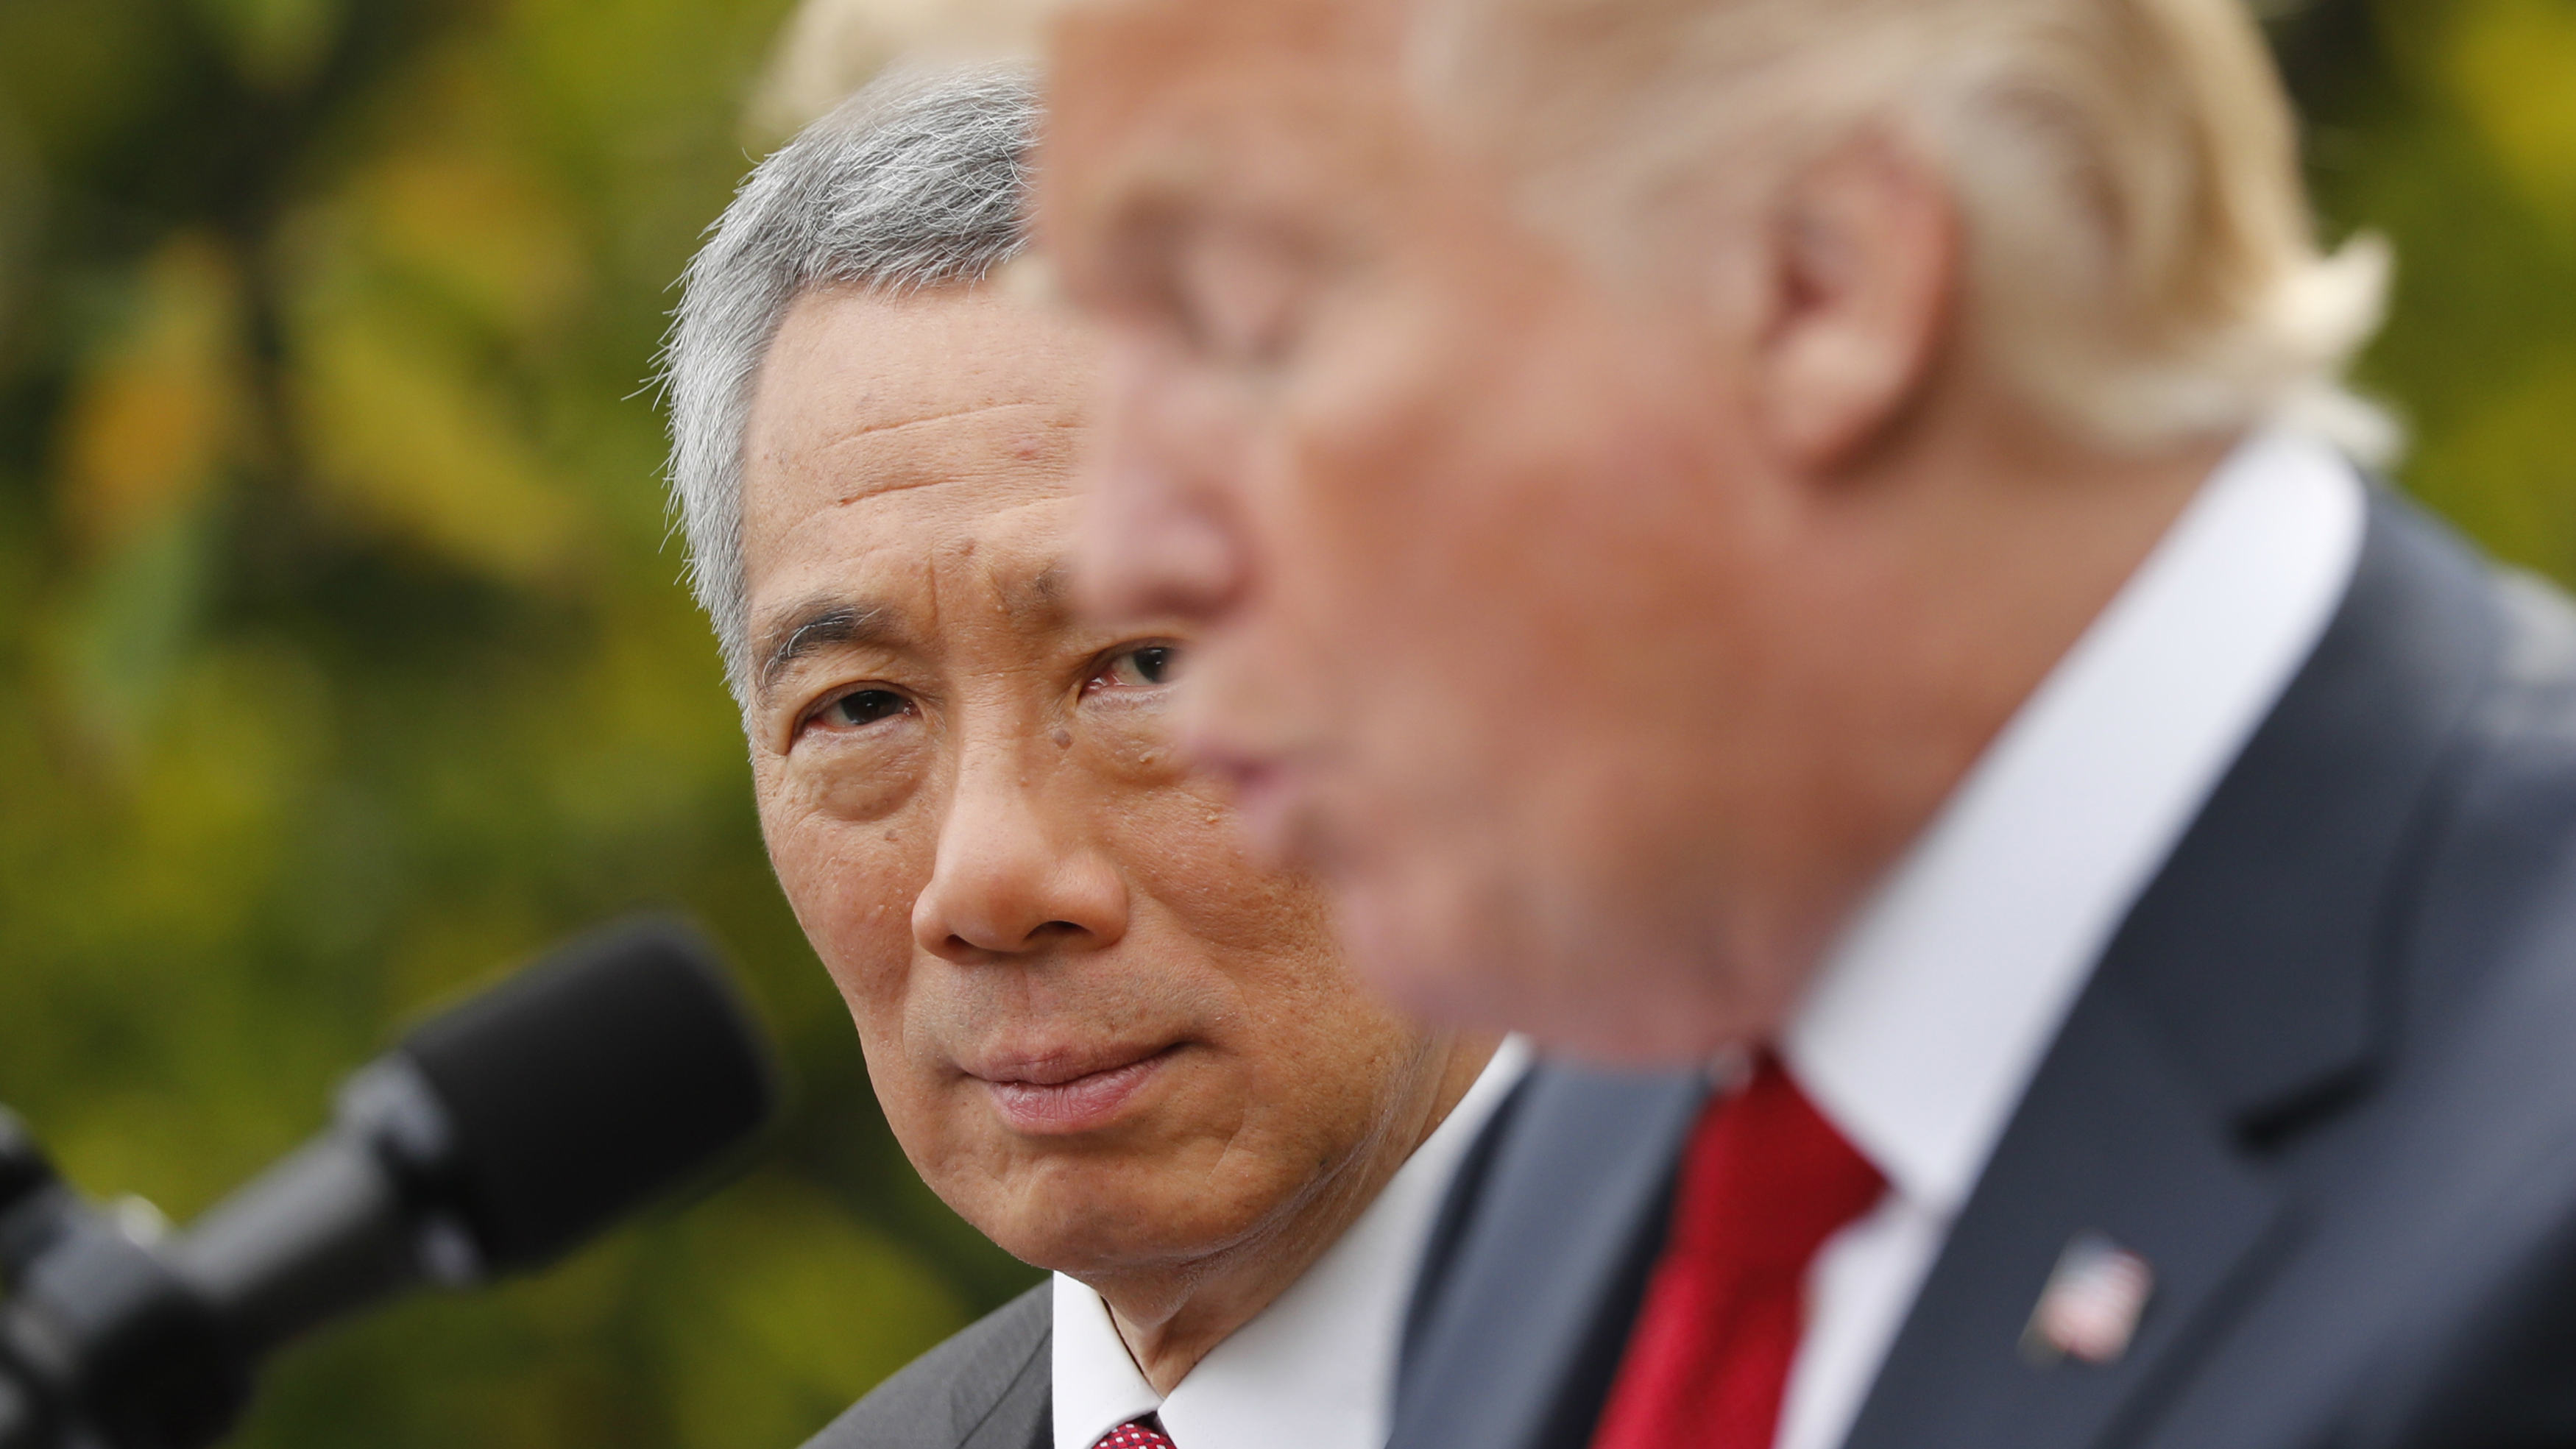 Singapore's Prime Minister Lee Hsien Loong and U.S. President Donald Trump give joint statements in the Rose Garden of the White House in Washington, U.S., October 23, 2017.